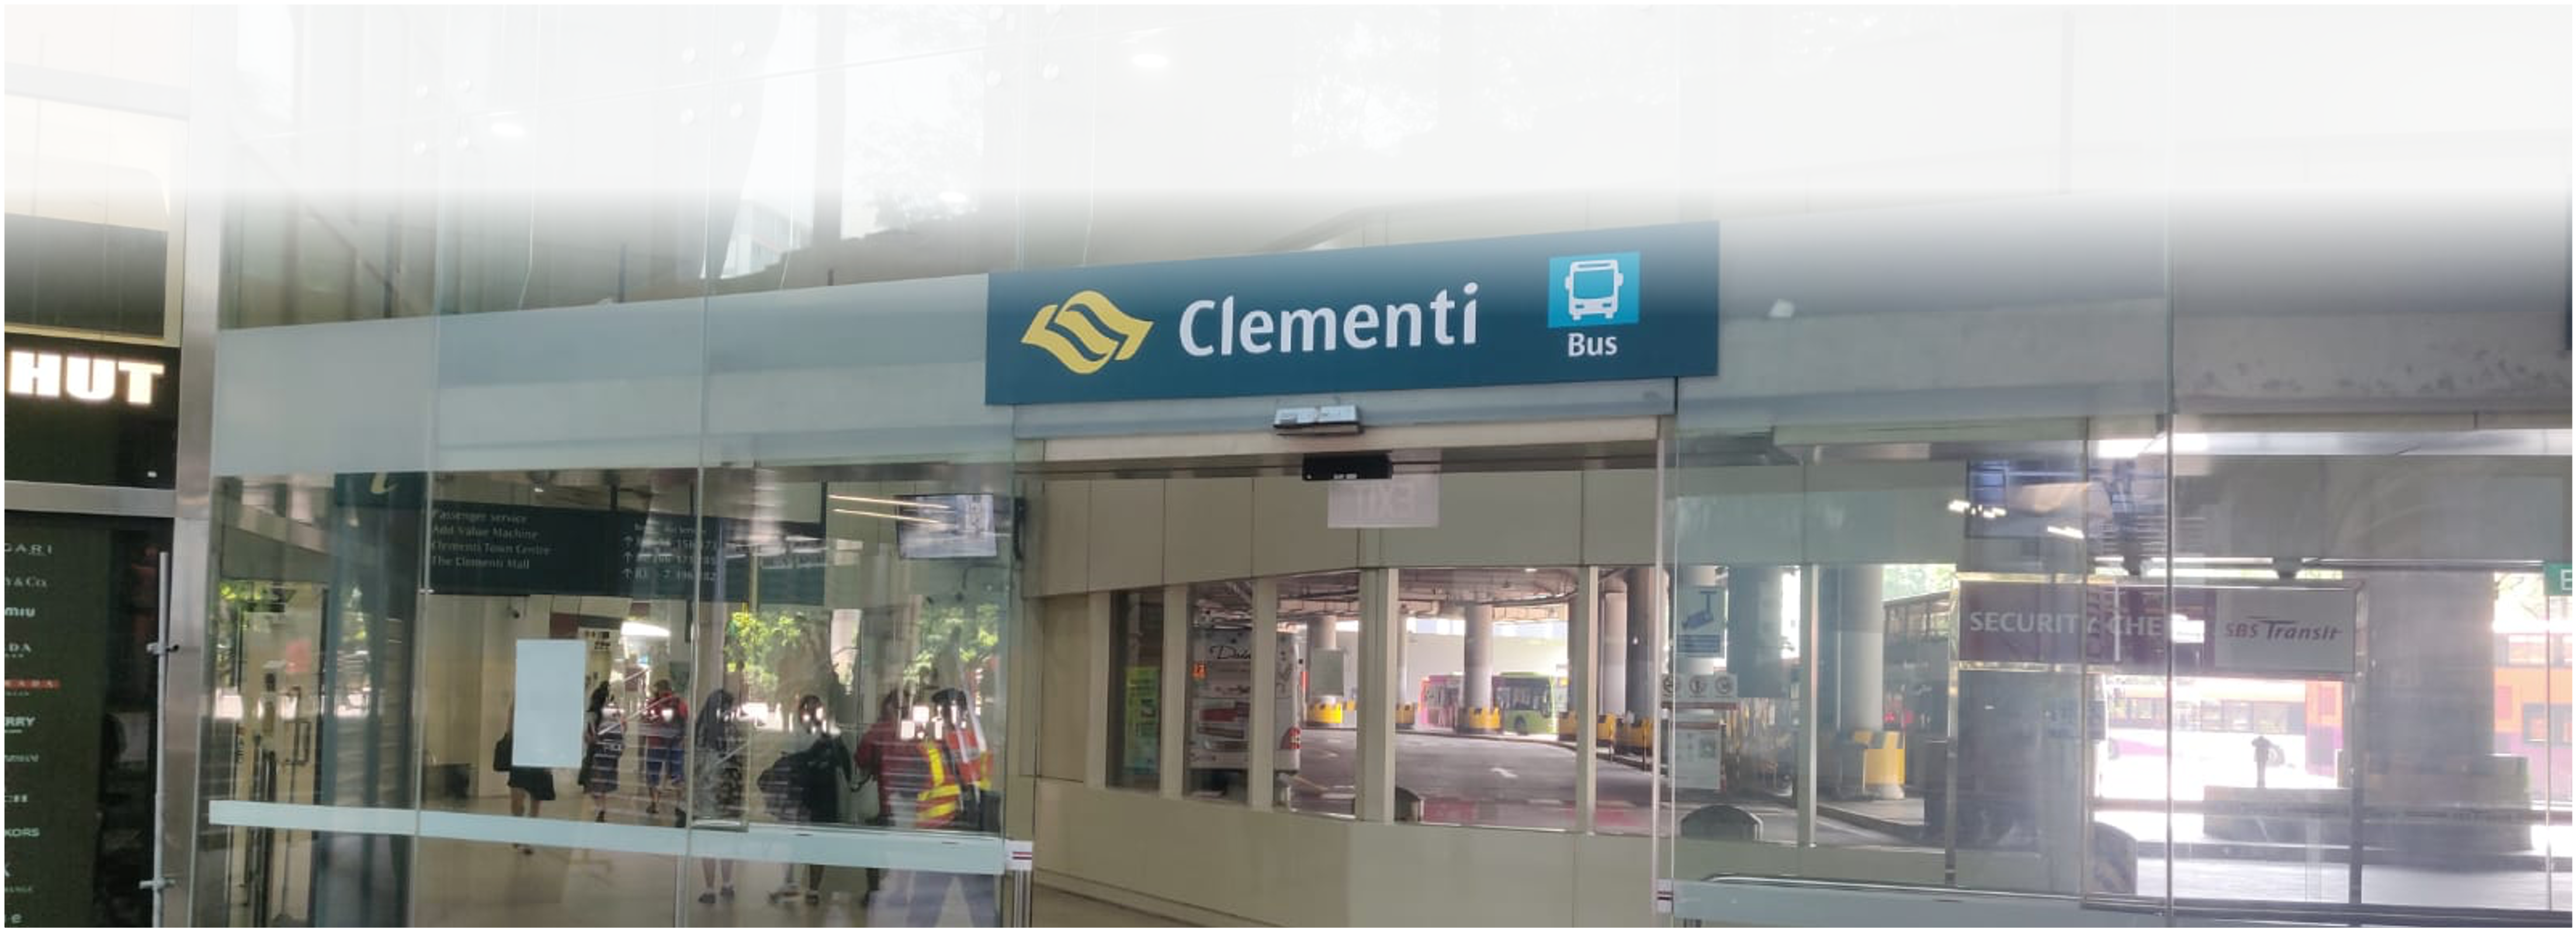 Clementi Cover